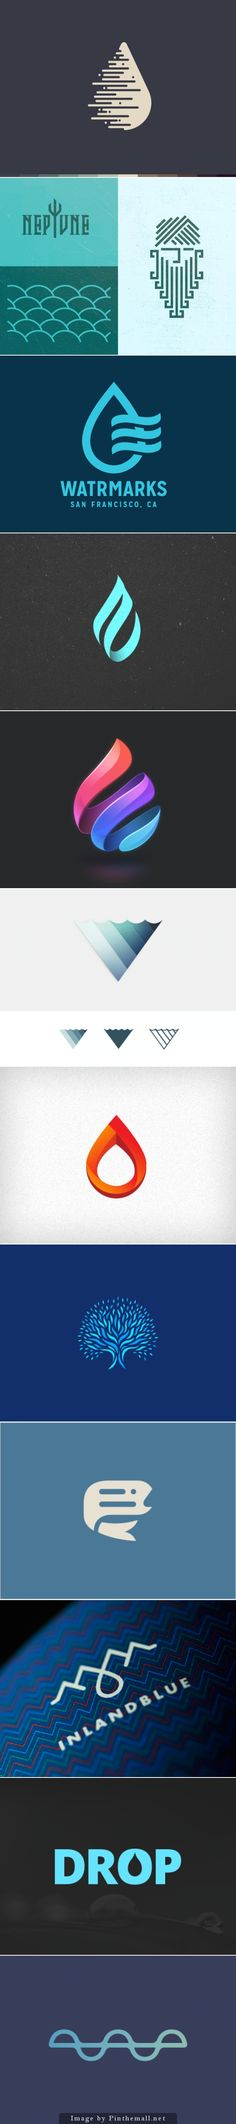 Beautiful Water Inspired Logos. Would be cool if we could incorporate the direction from this. i.e. the logo alone should identify us